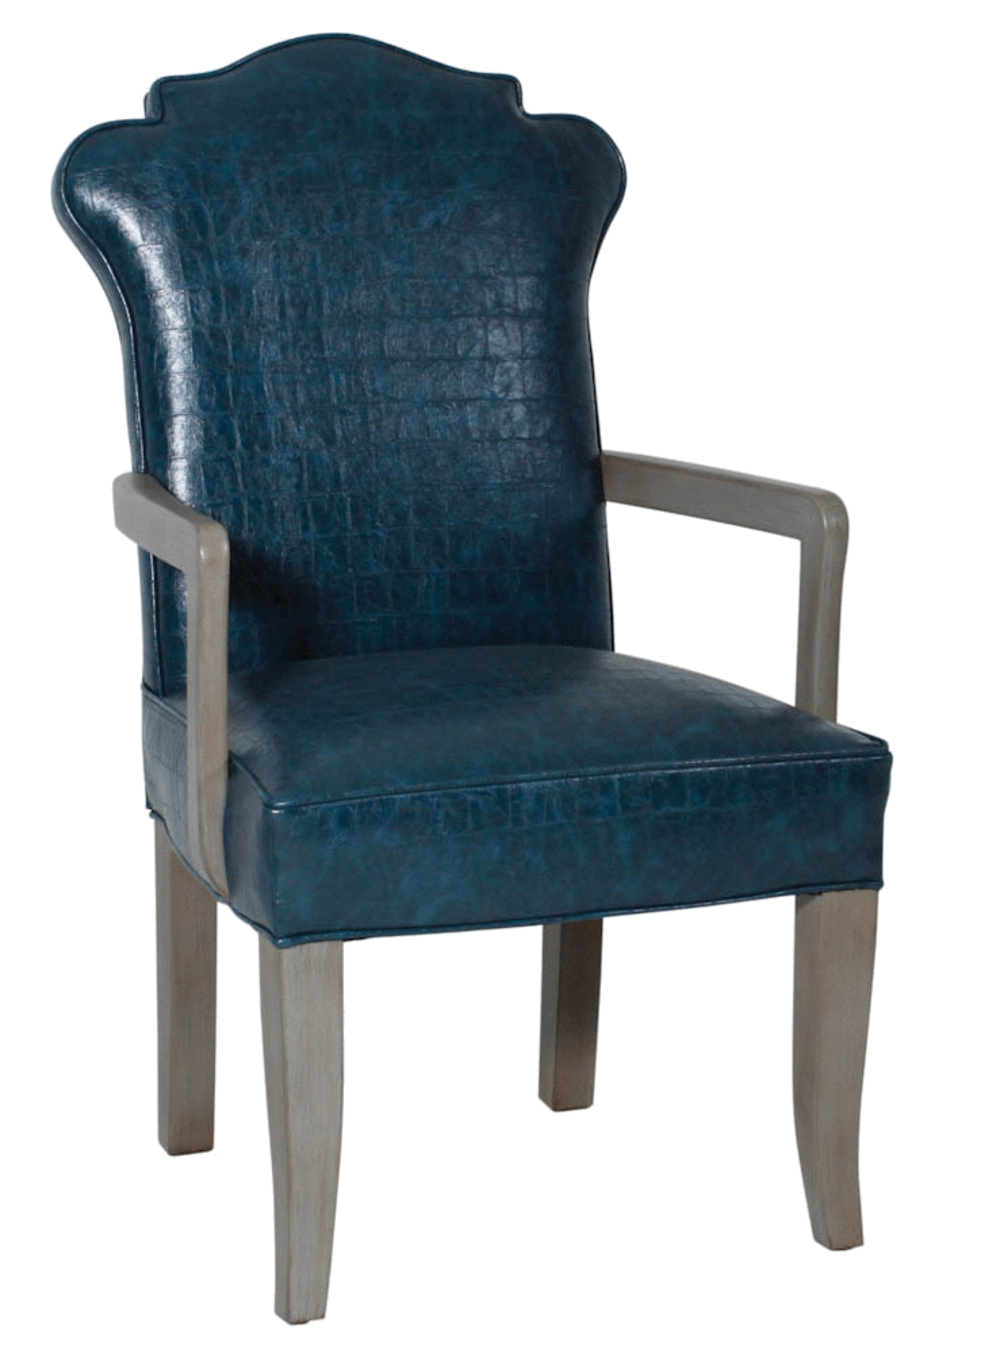 COX MANUFACTURING COMPANY, INC - Host Chair